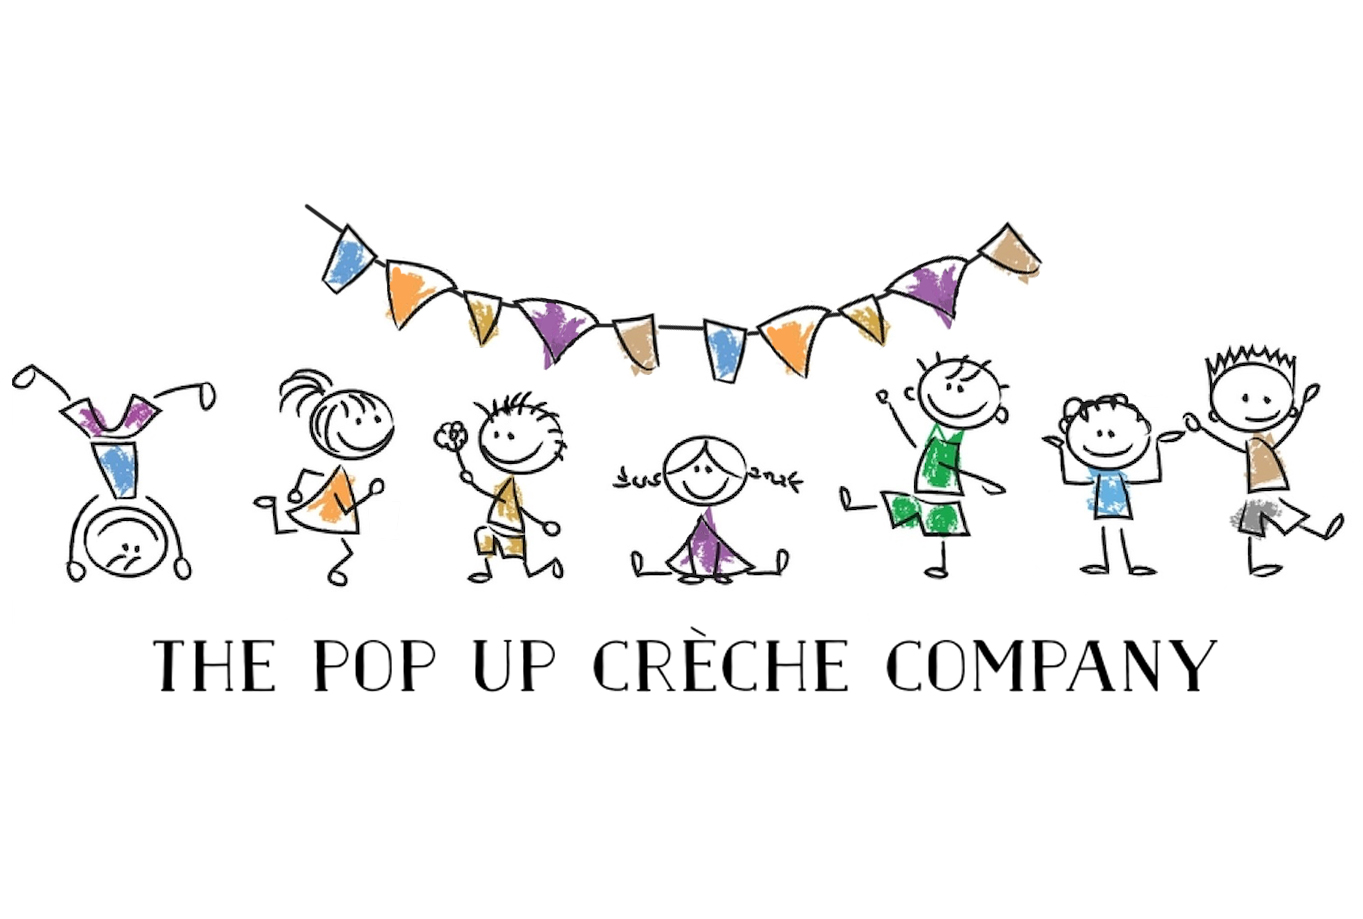 The Pop Up Crèche Company